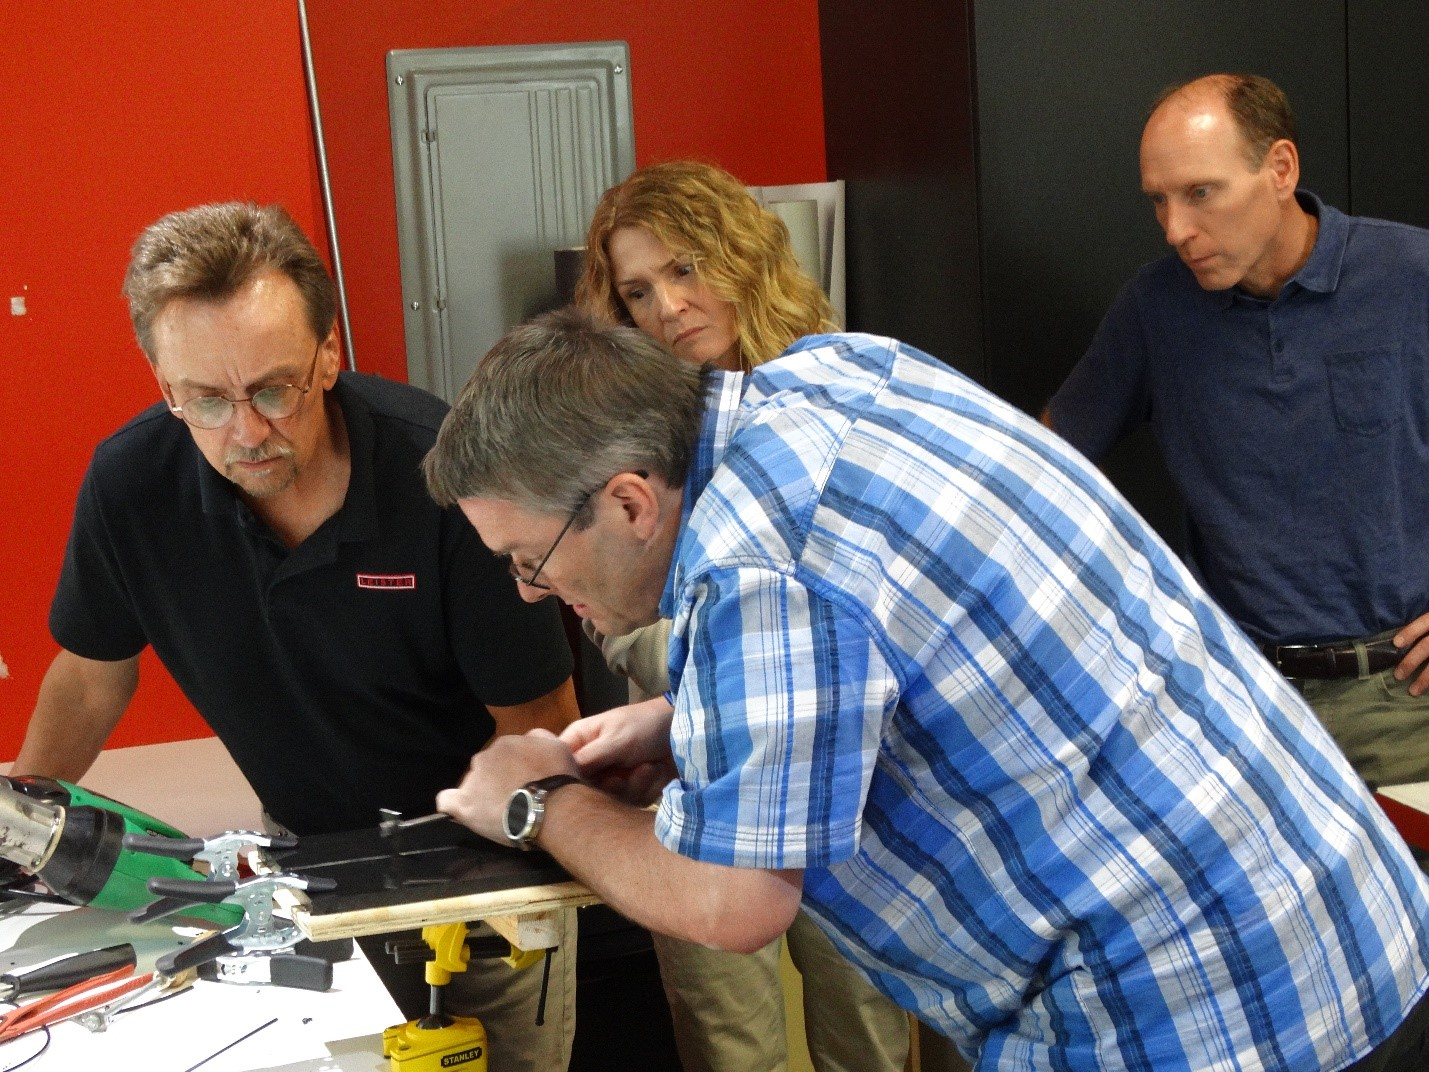 DVS Training at Leister Technologies, LLC